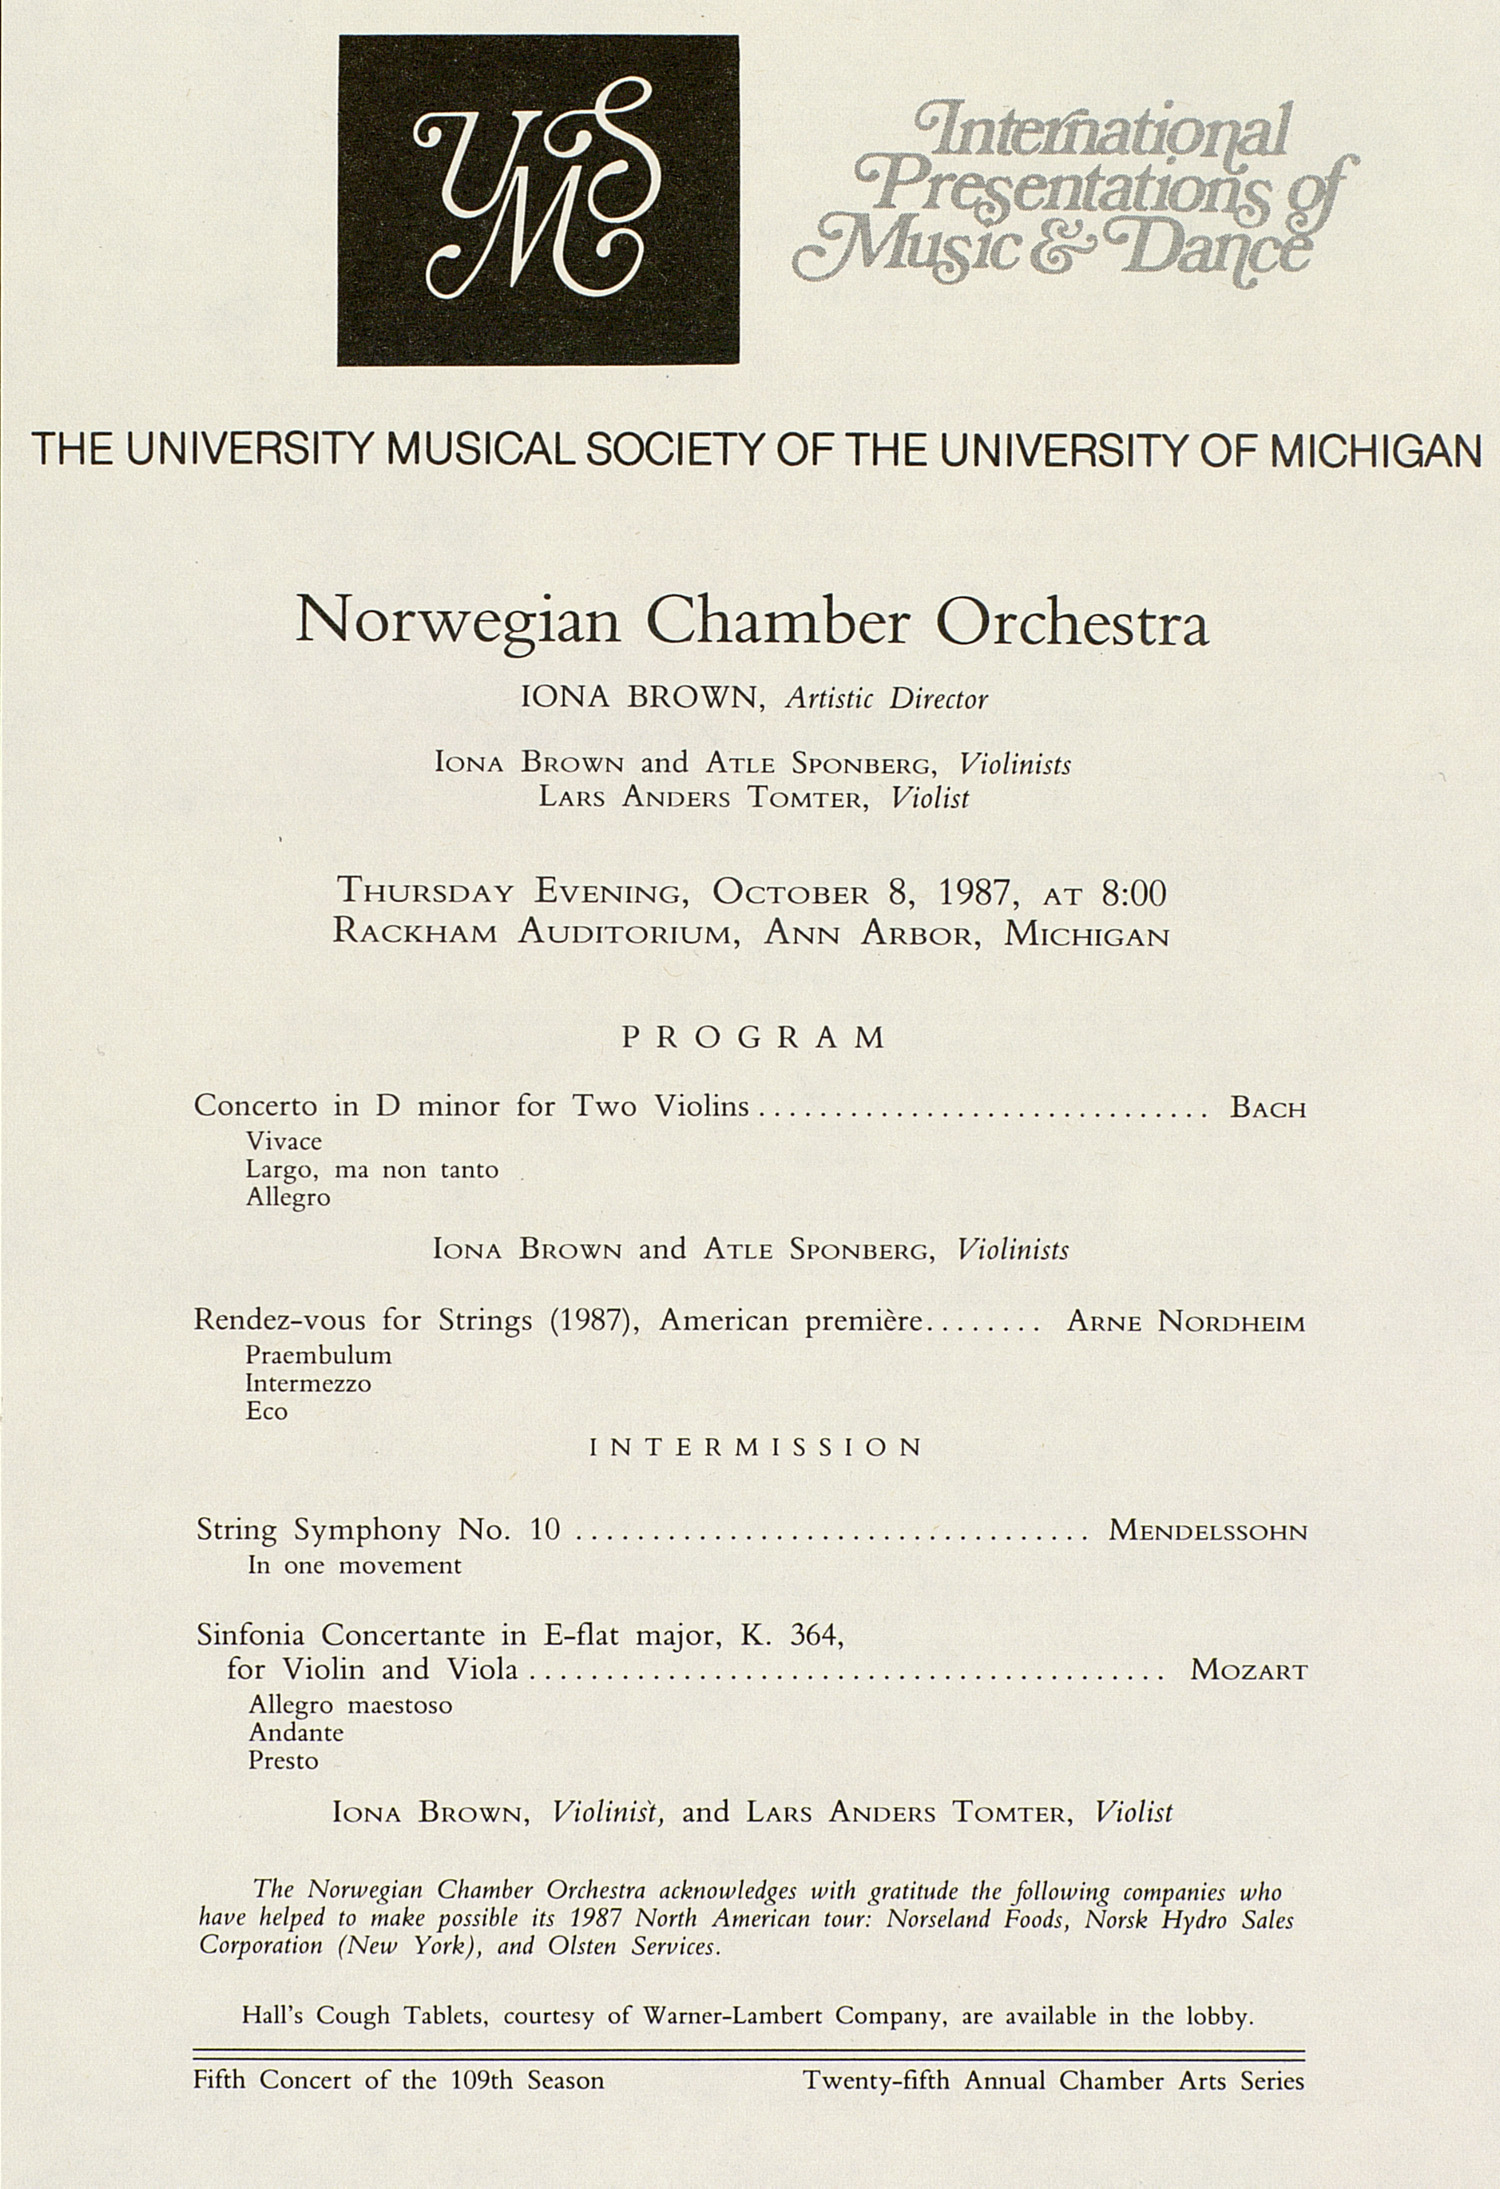 UMS Concert Program, October 8, 1987: International Presentations Of Music & Dance -- Norwegian Chamber Orchestra image